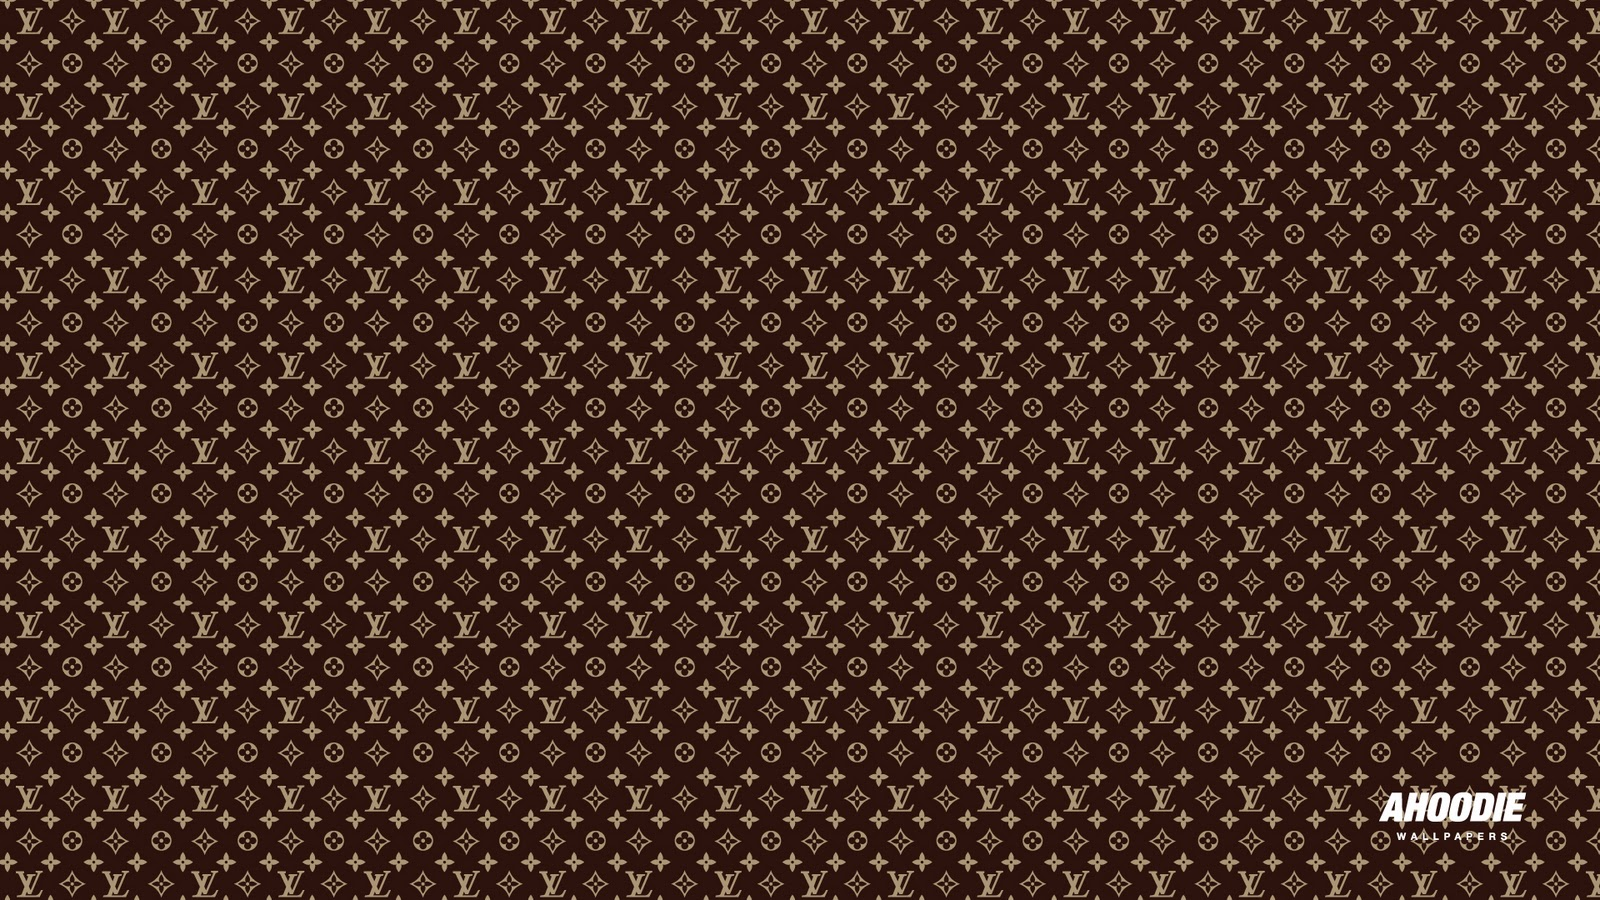 louis vuitton desktop wallpaper   Quotekocom 1600x900